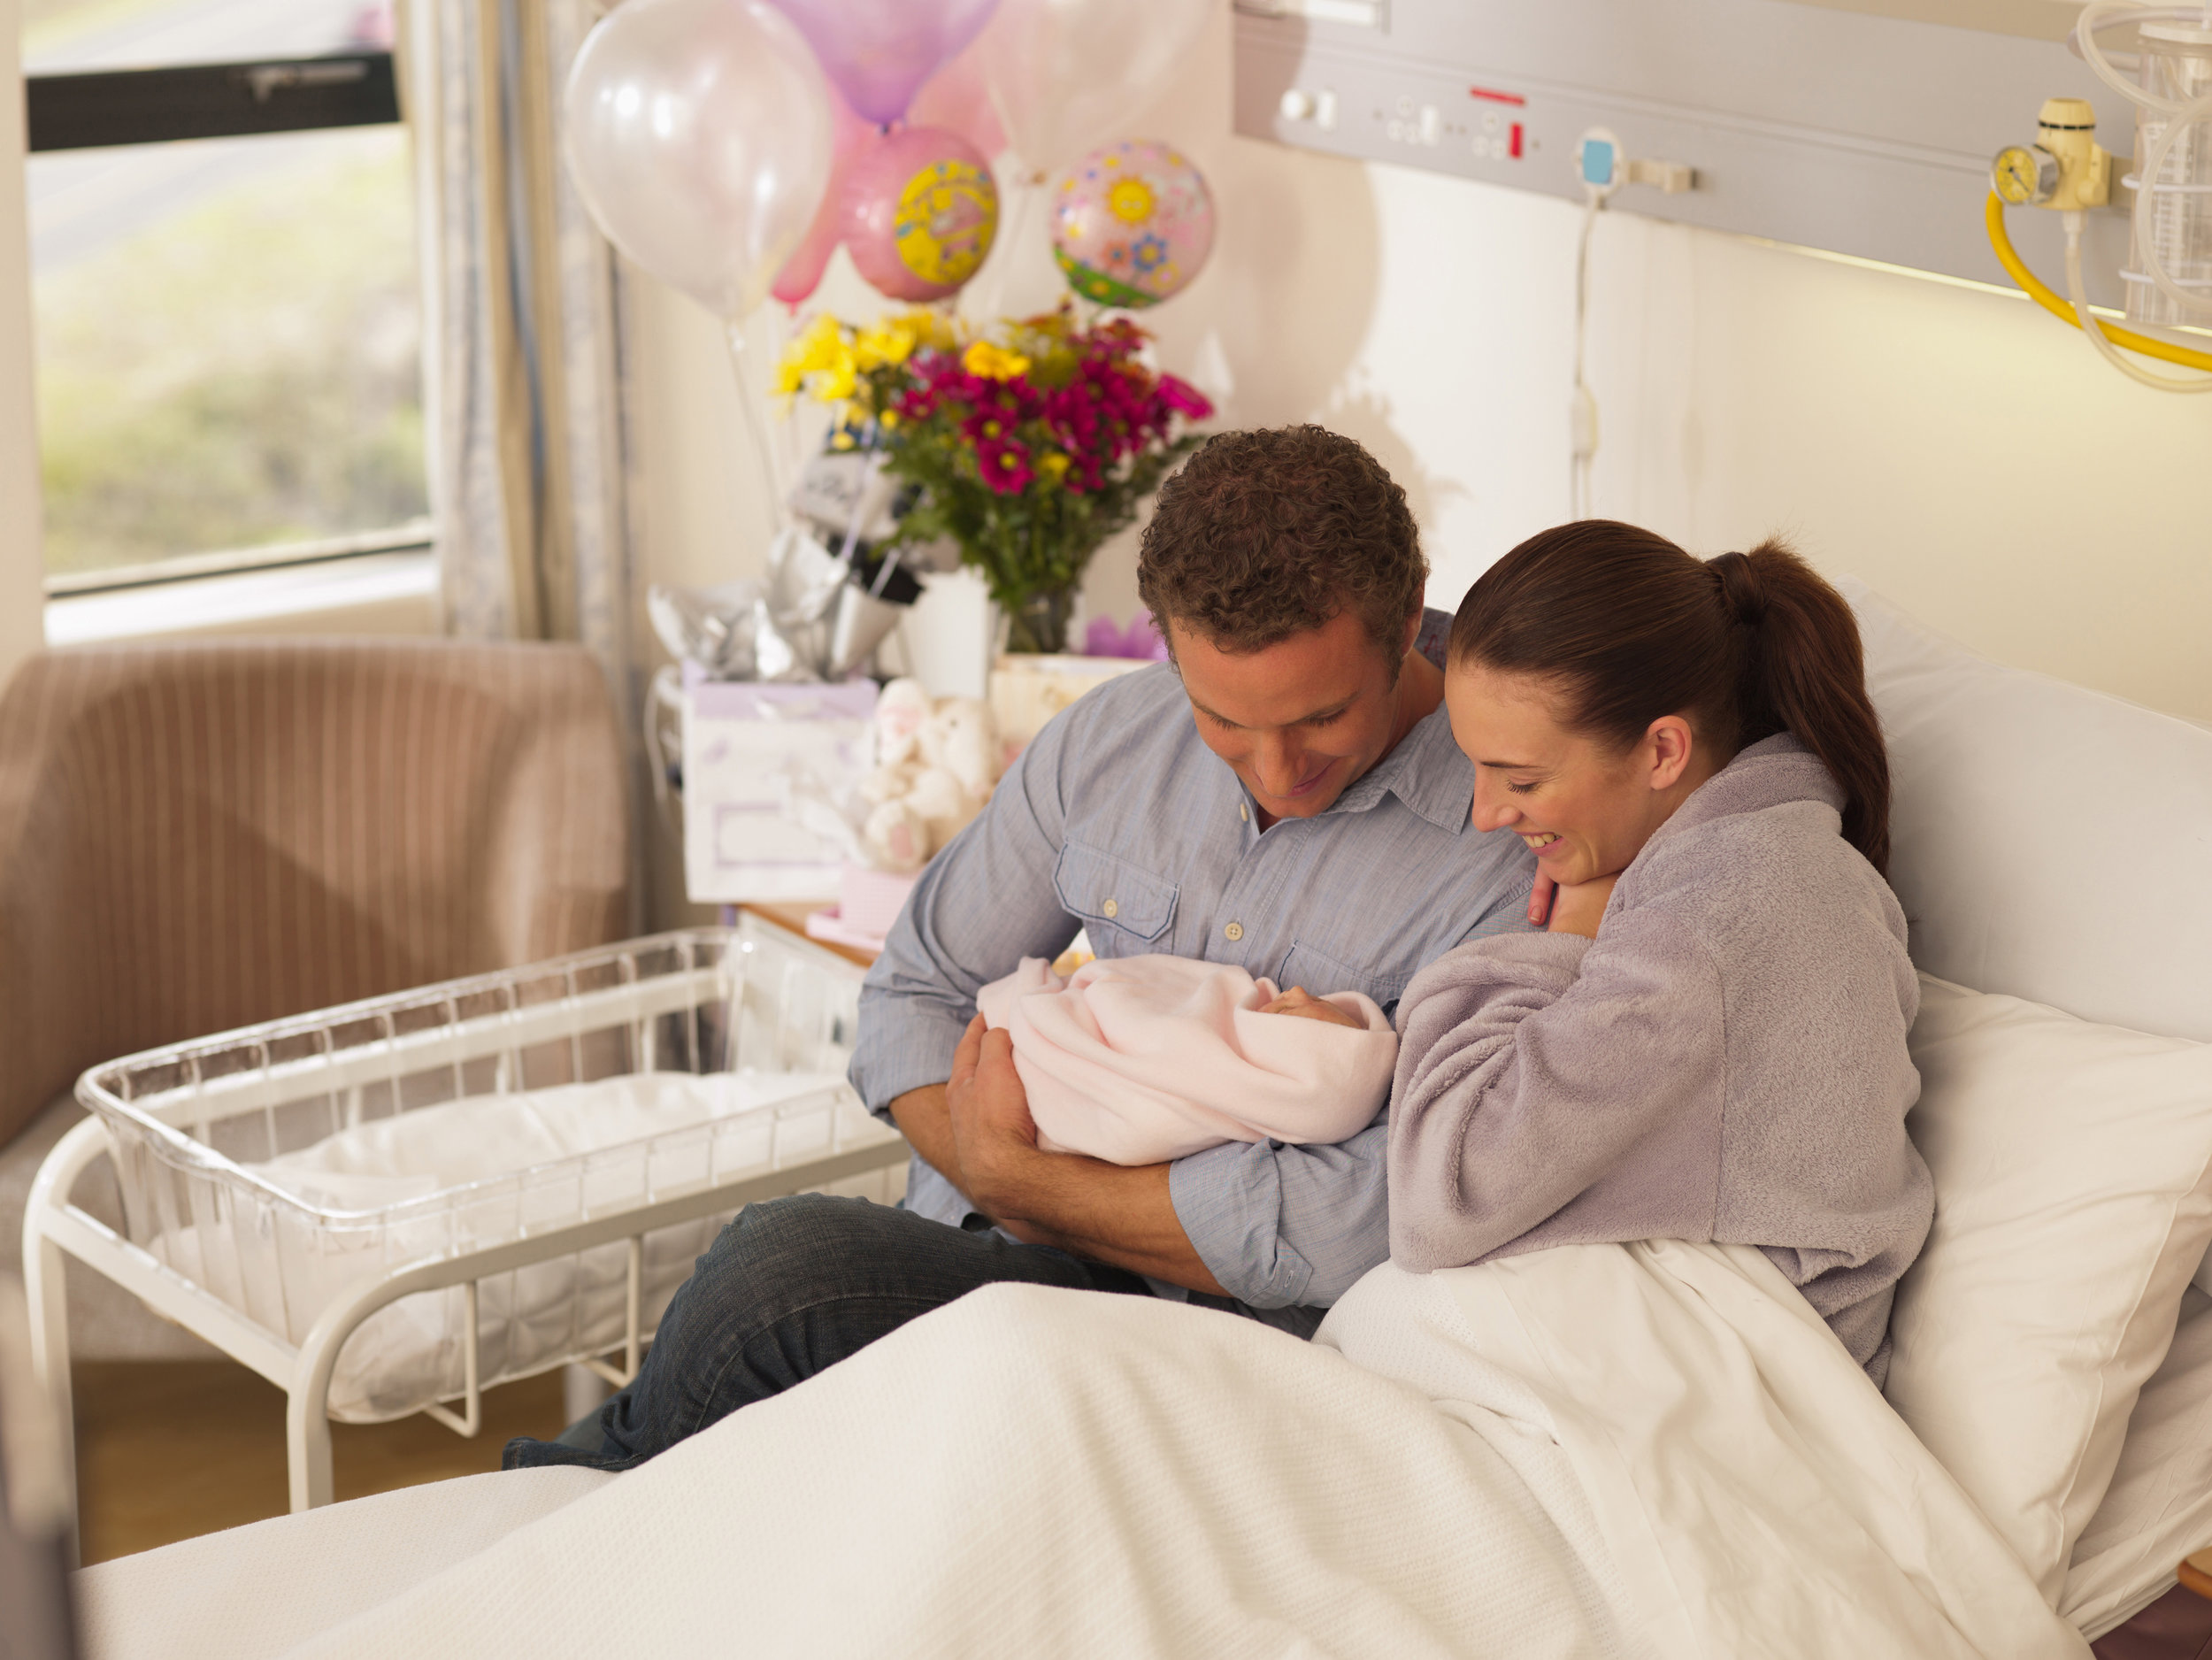 GettyImages-170750575 new baby parents hospital.jpg